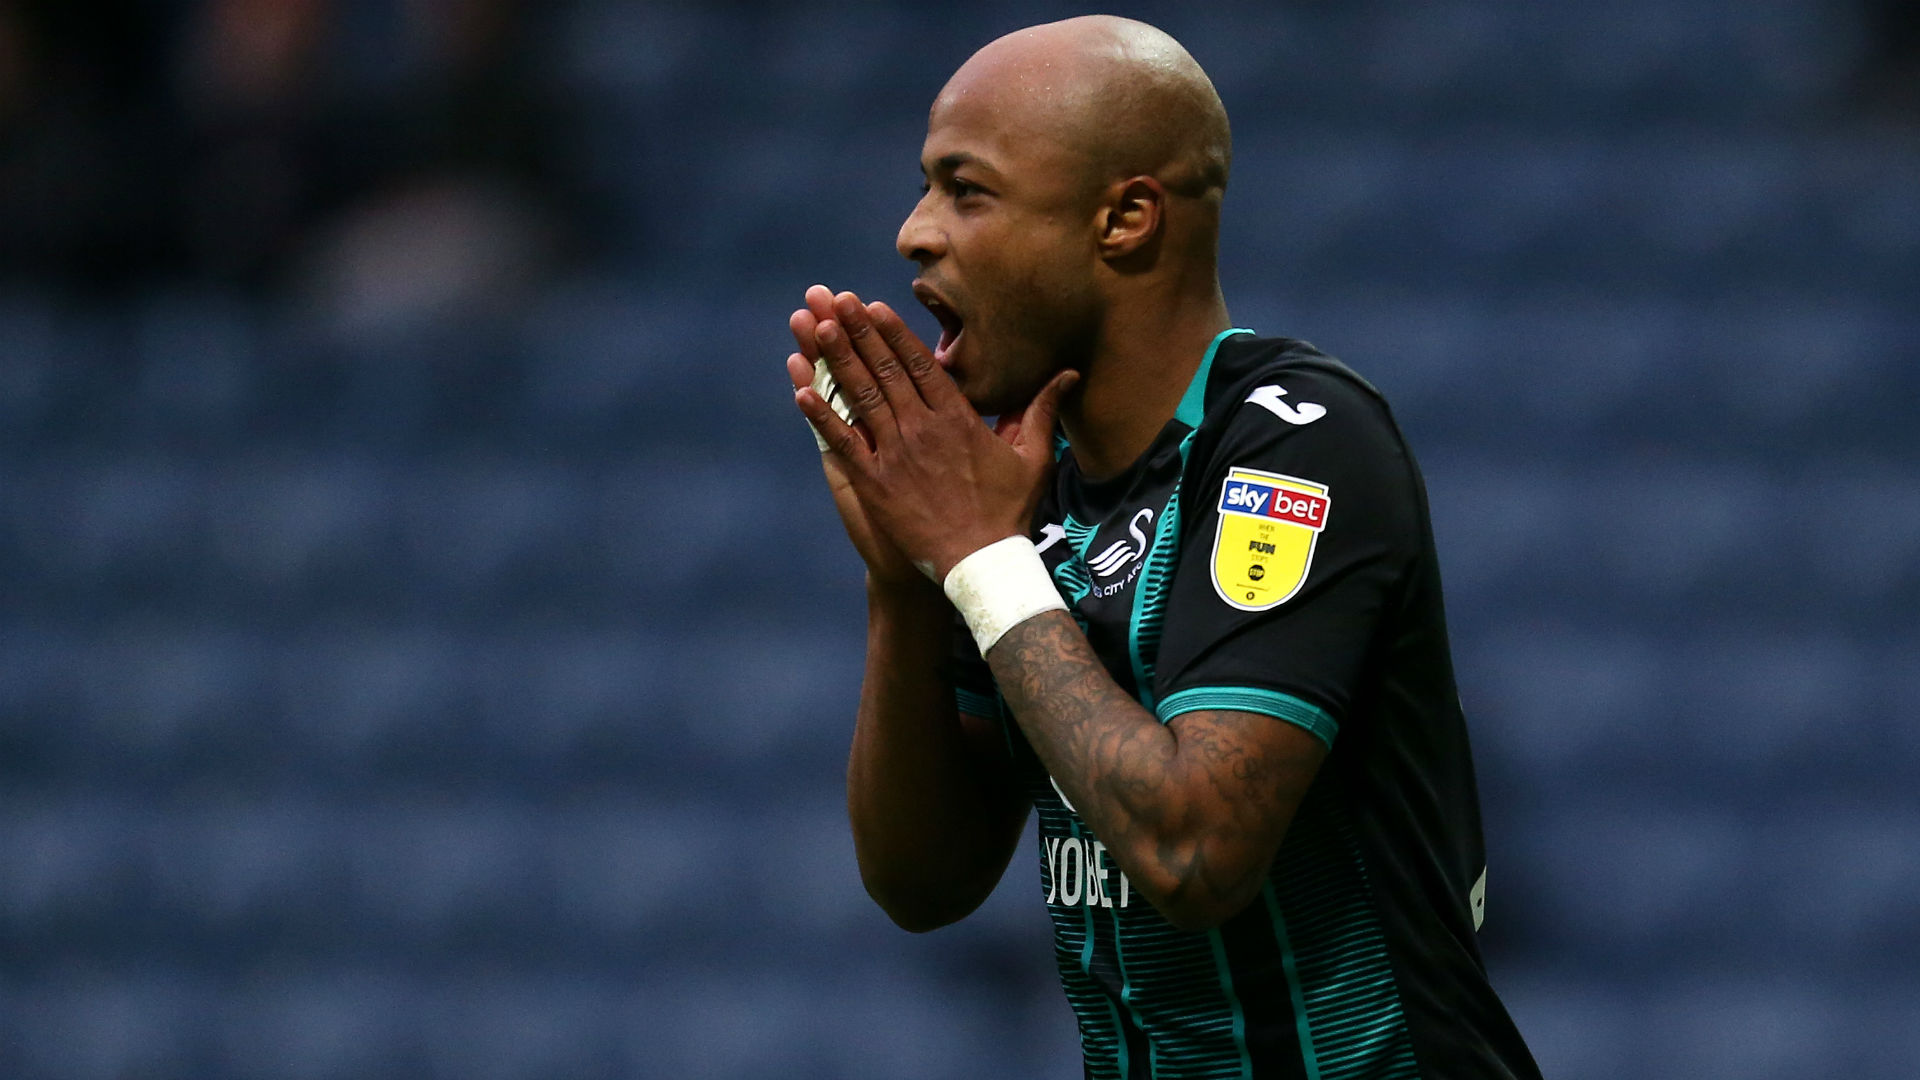 Andre Ayew's promotion hopes end as Benrahma's Brentford beat Swansea